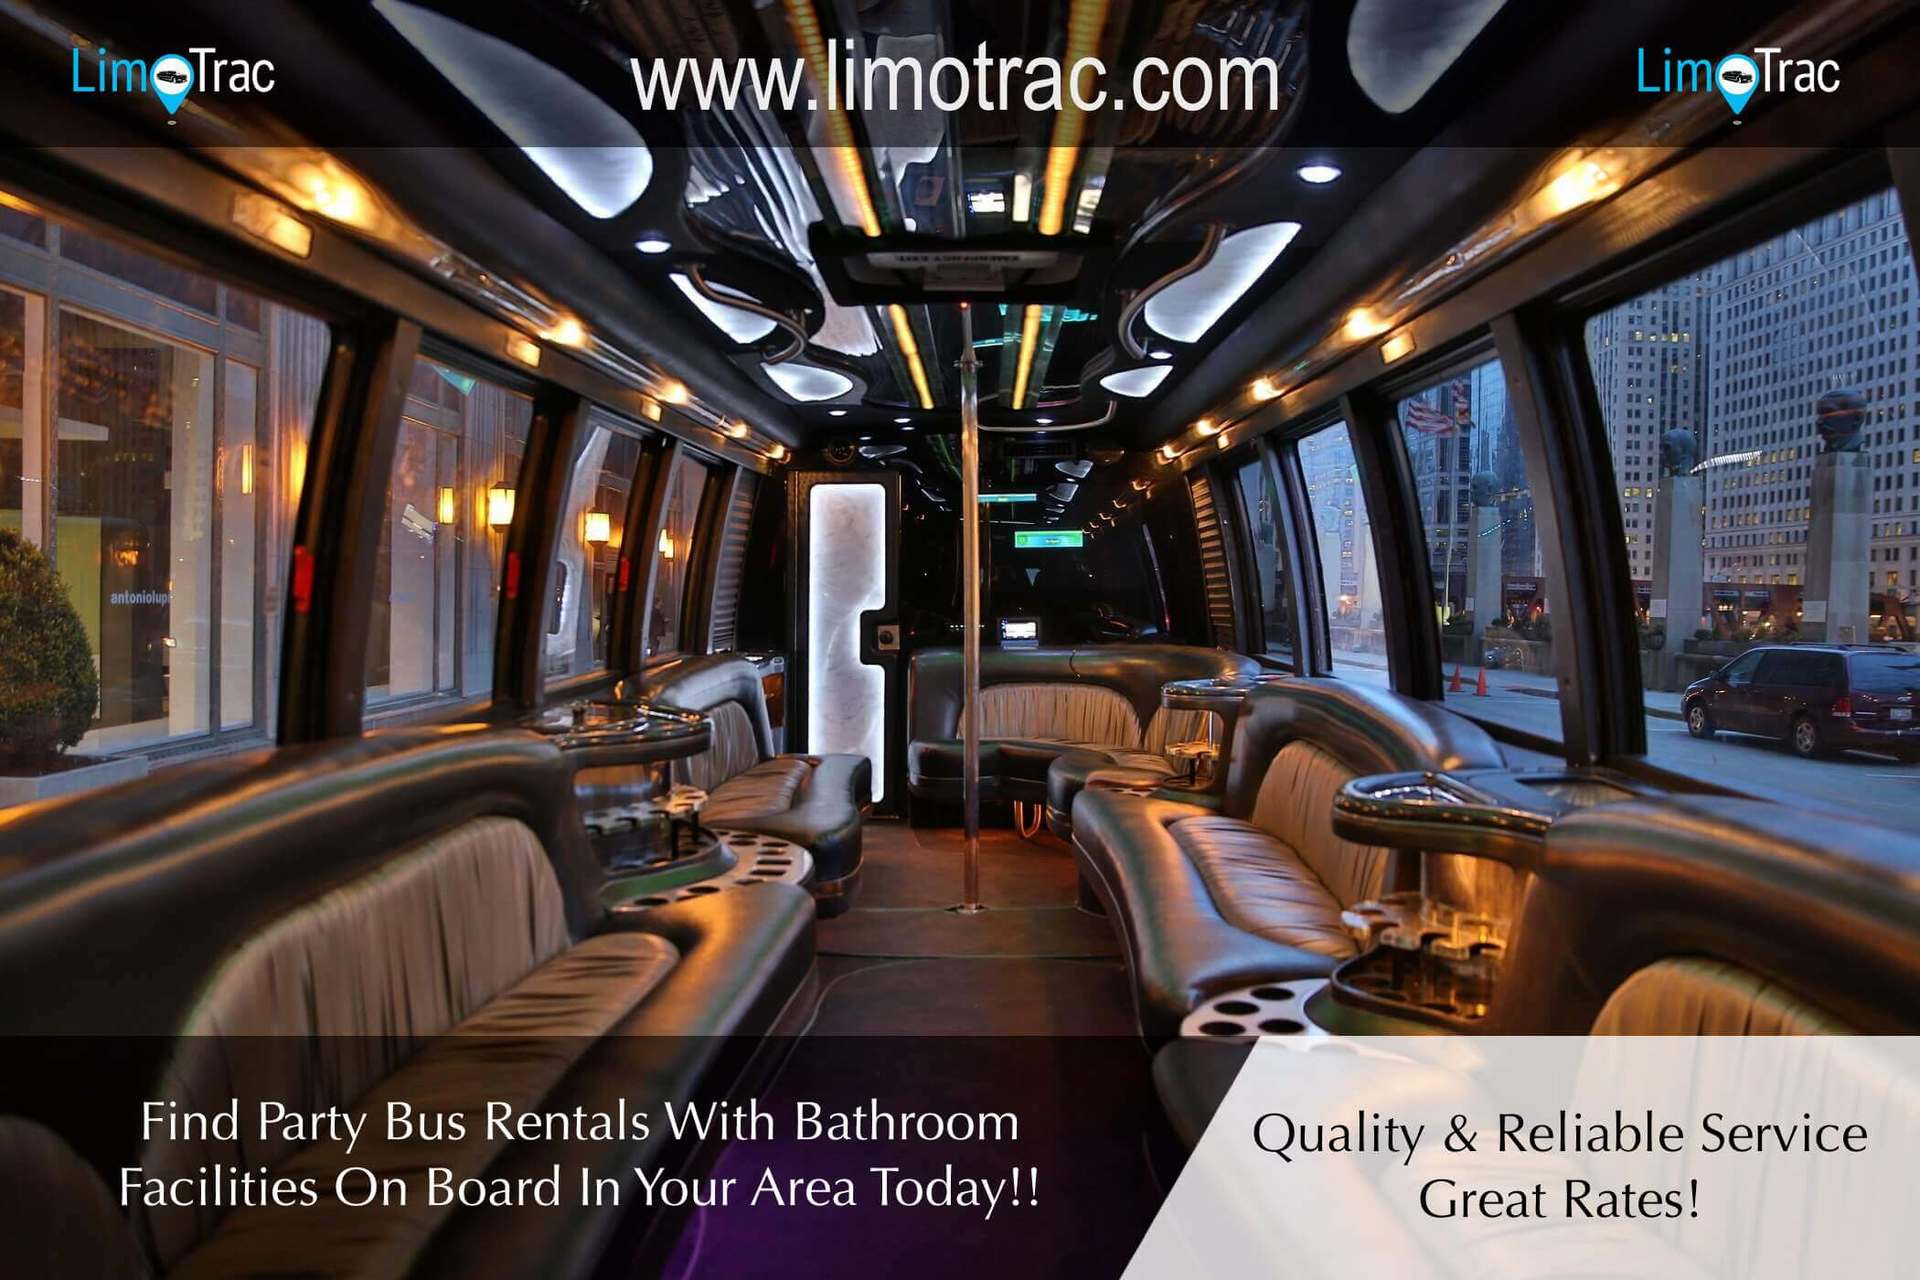 PARTY BUS With BATHROOM LIMO BUS With A RESTROOM Near Me - Do charter buses have bathrooms